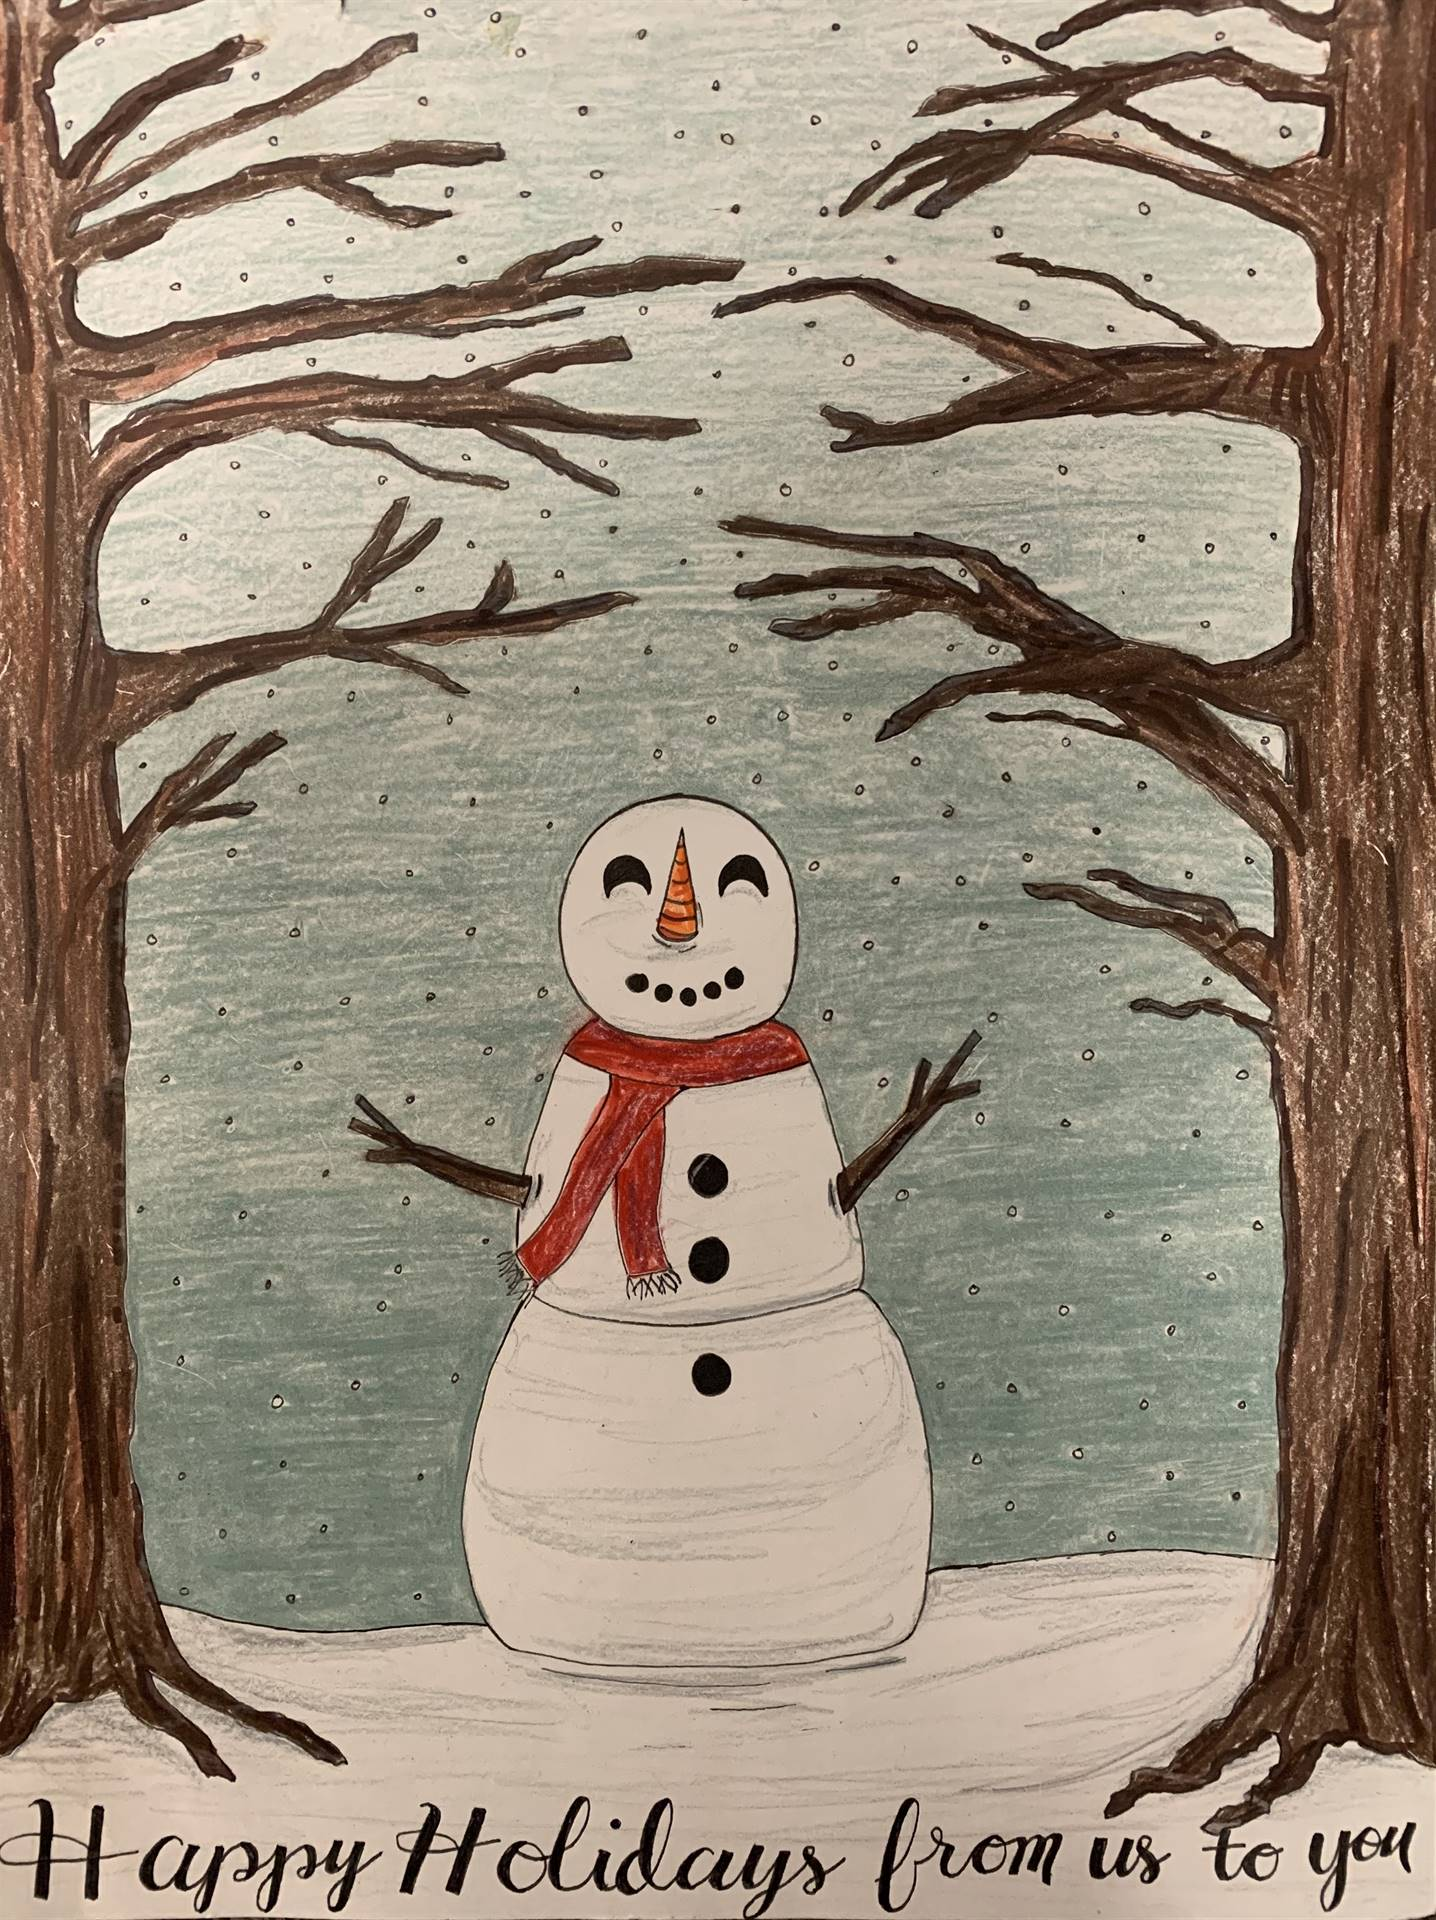 Snowman Holiday Card Art Contest entry